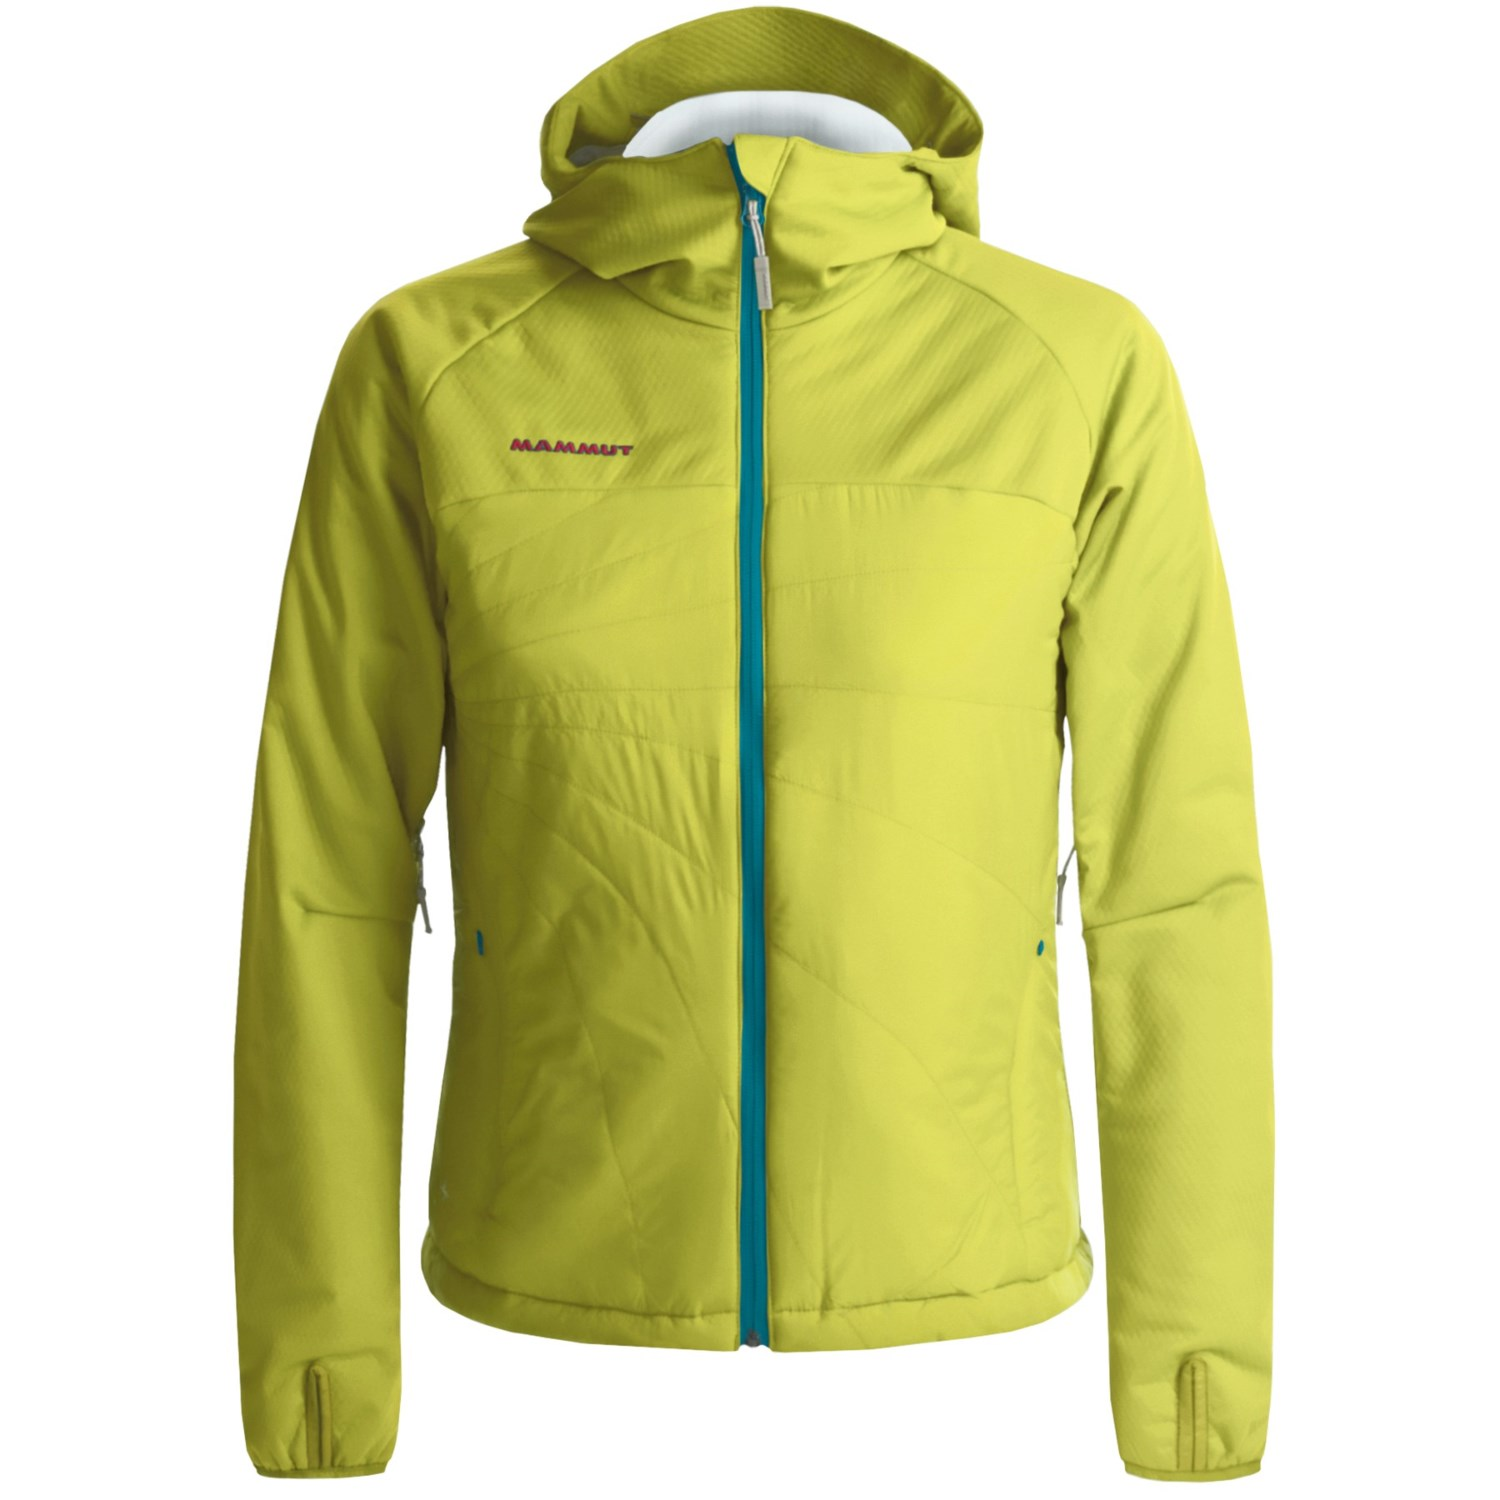 Womens Mammut Ski Jackets